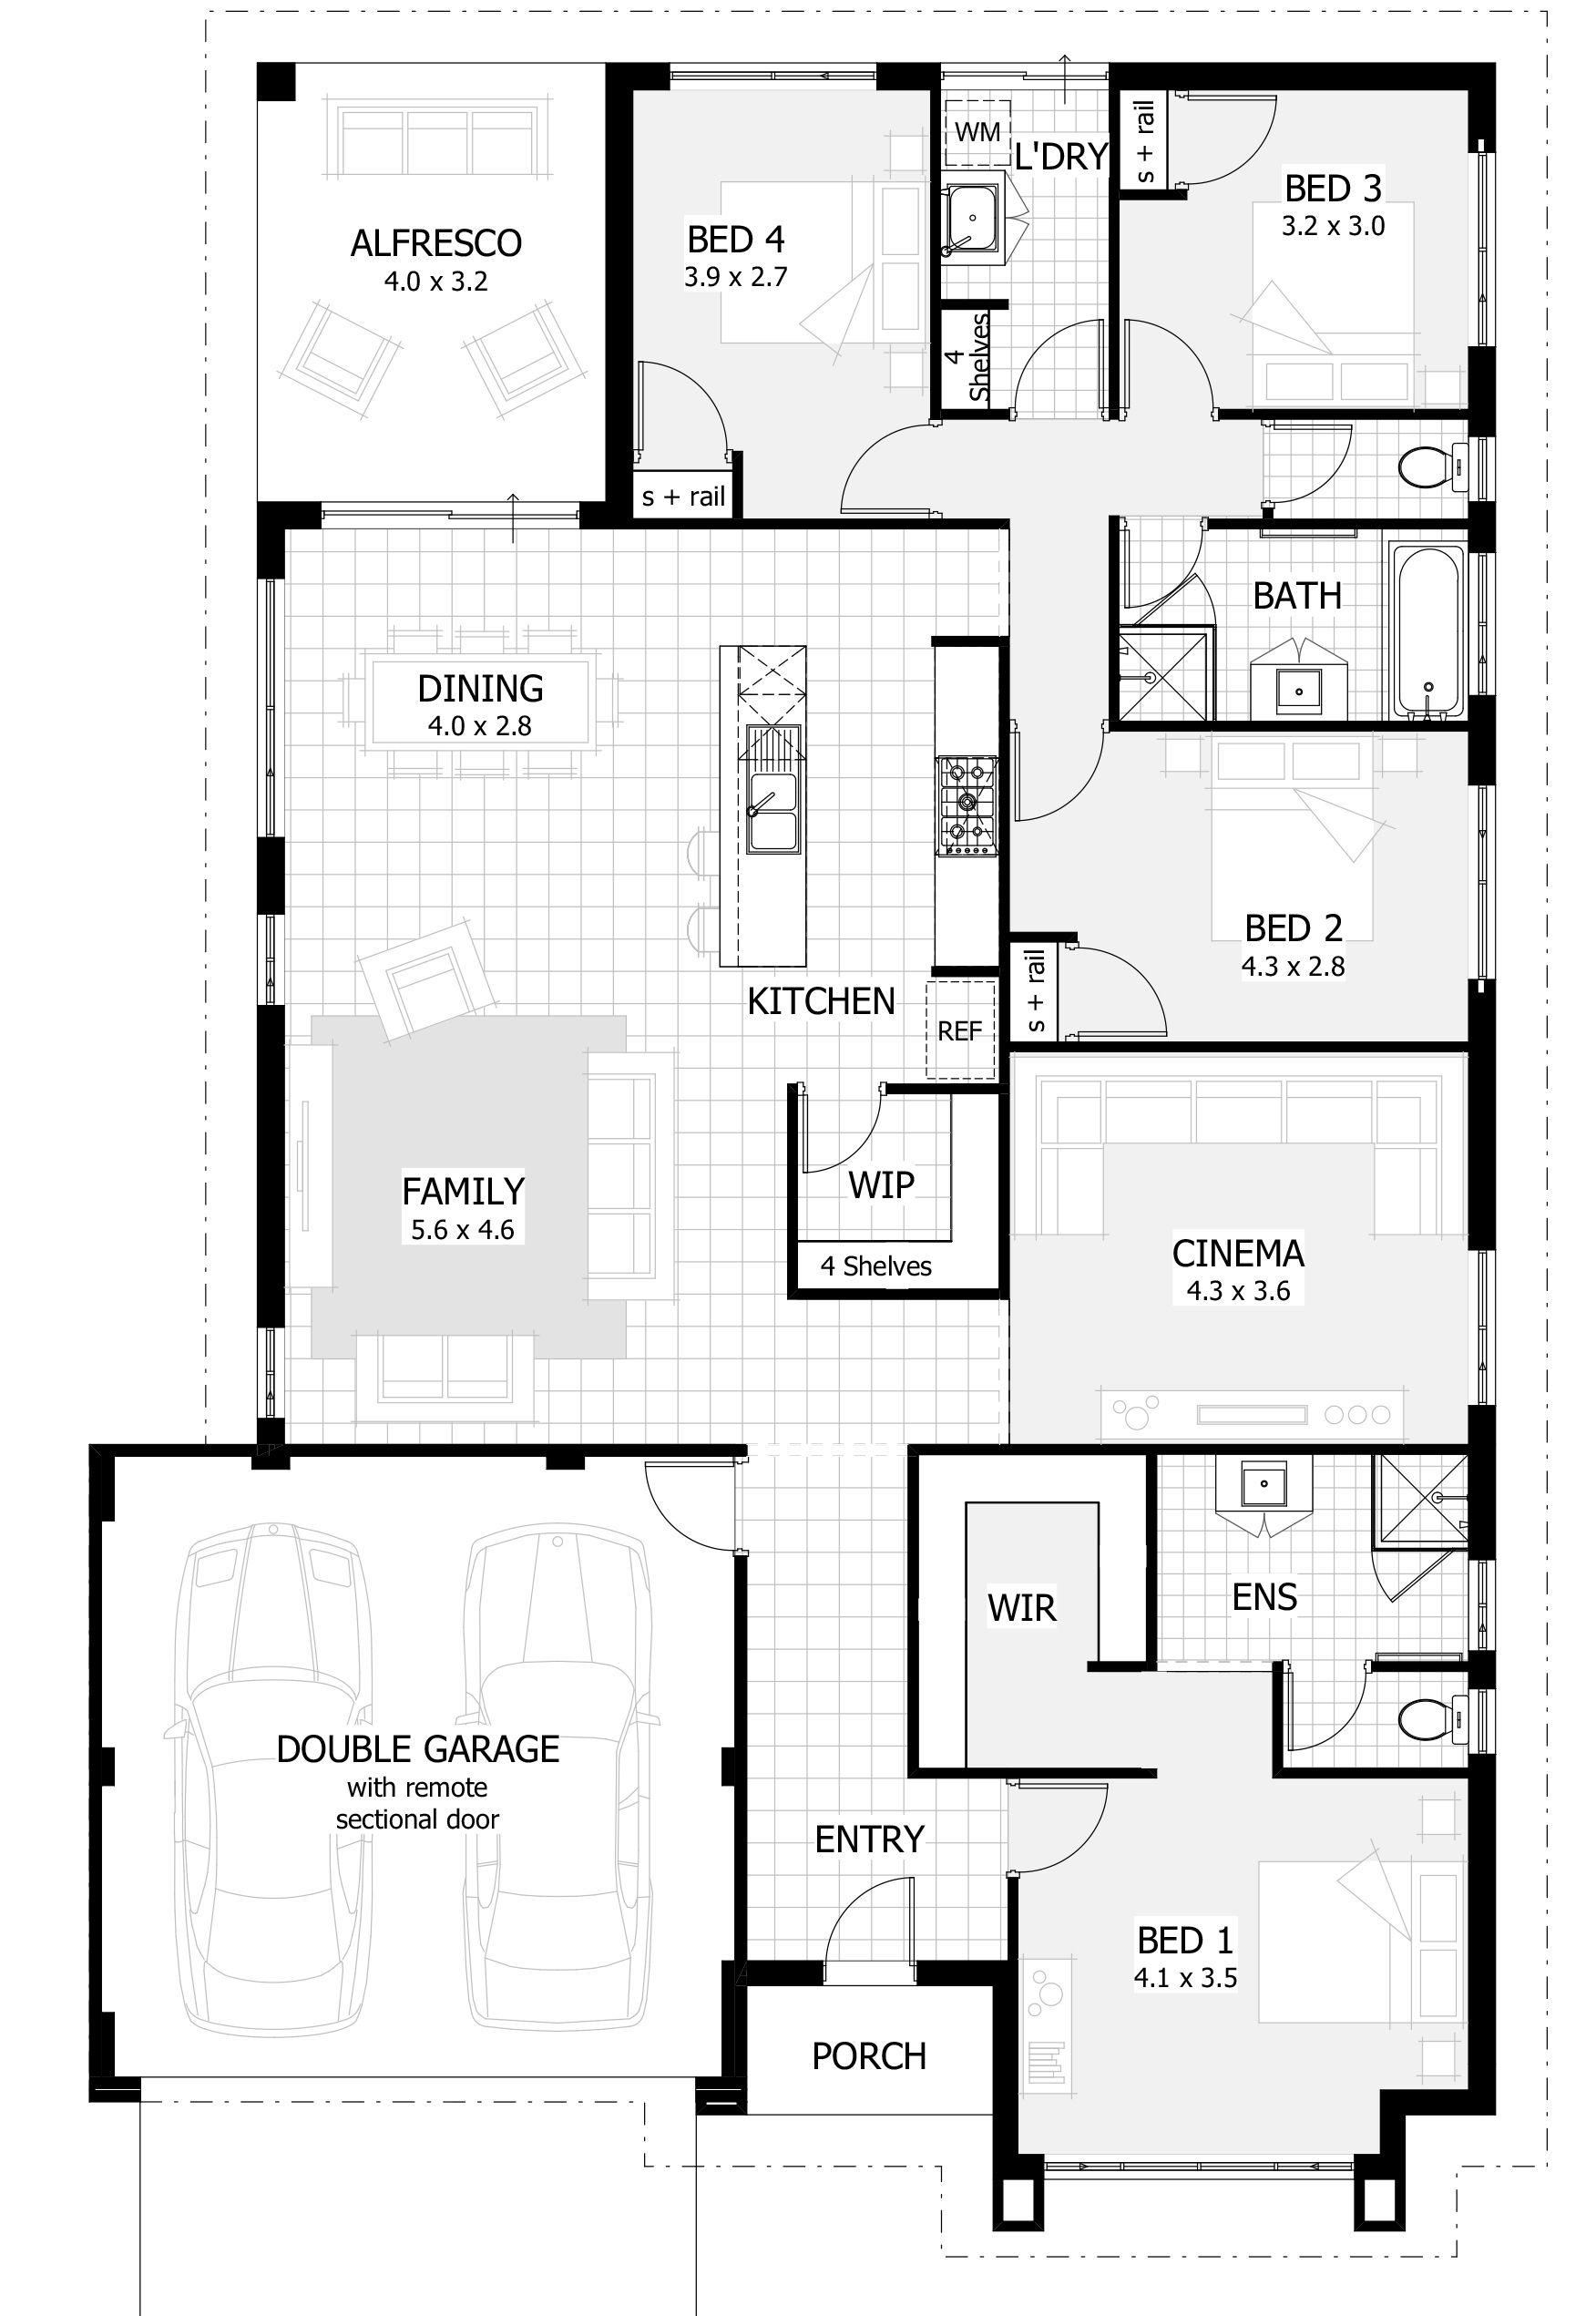 New Home Designs Perth, WA | Single Storey Floor Plans ...